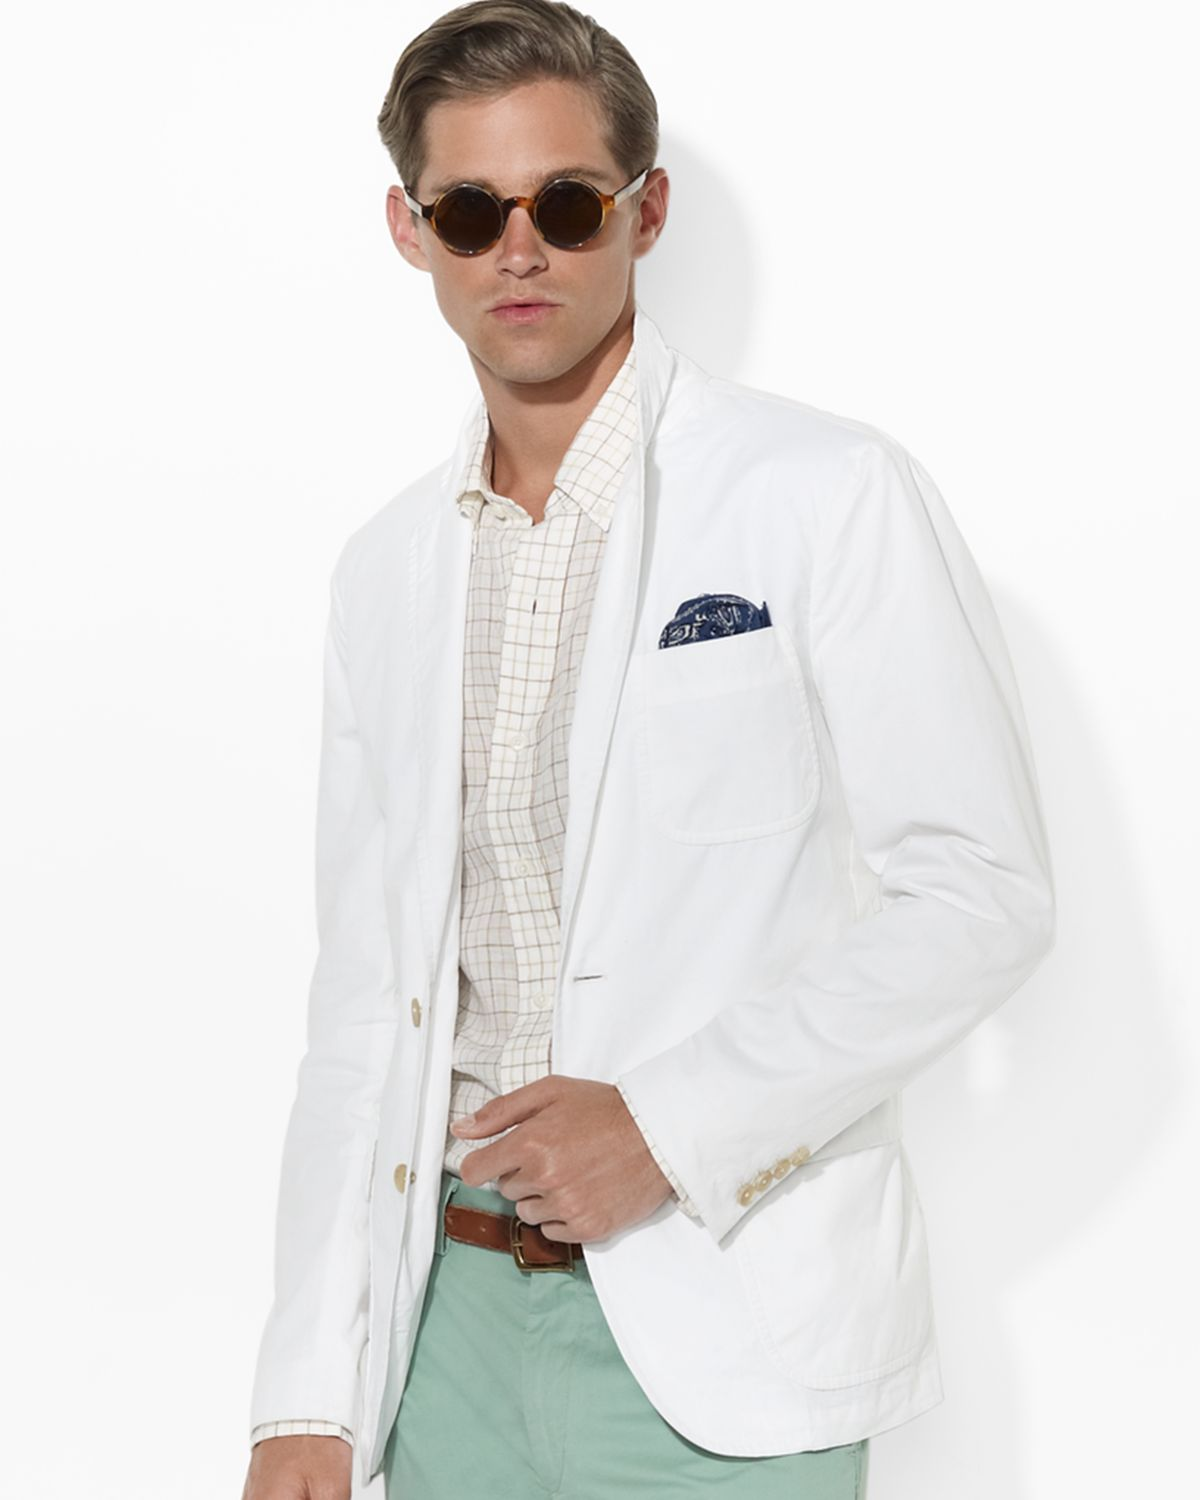 Ralph lauren Polo Langley Chino Sport Coat in White for Men | Lyst